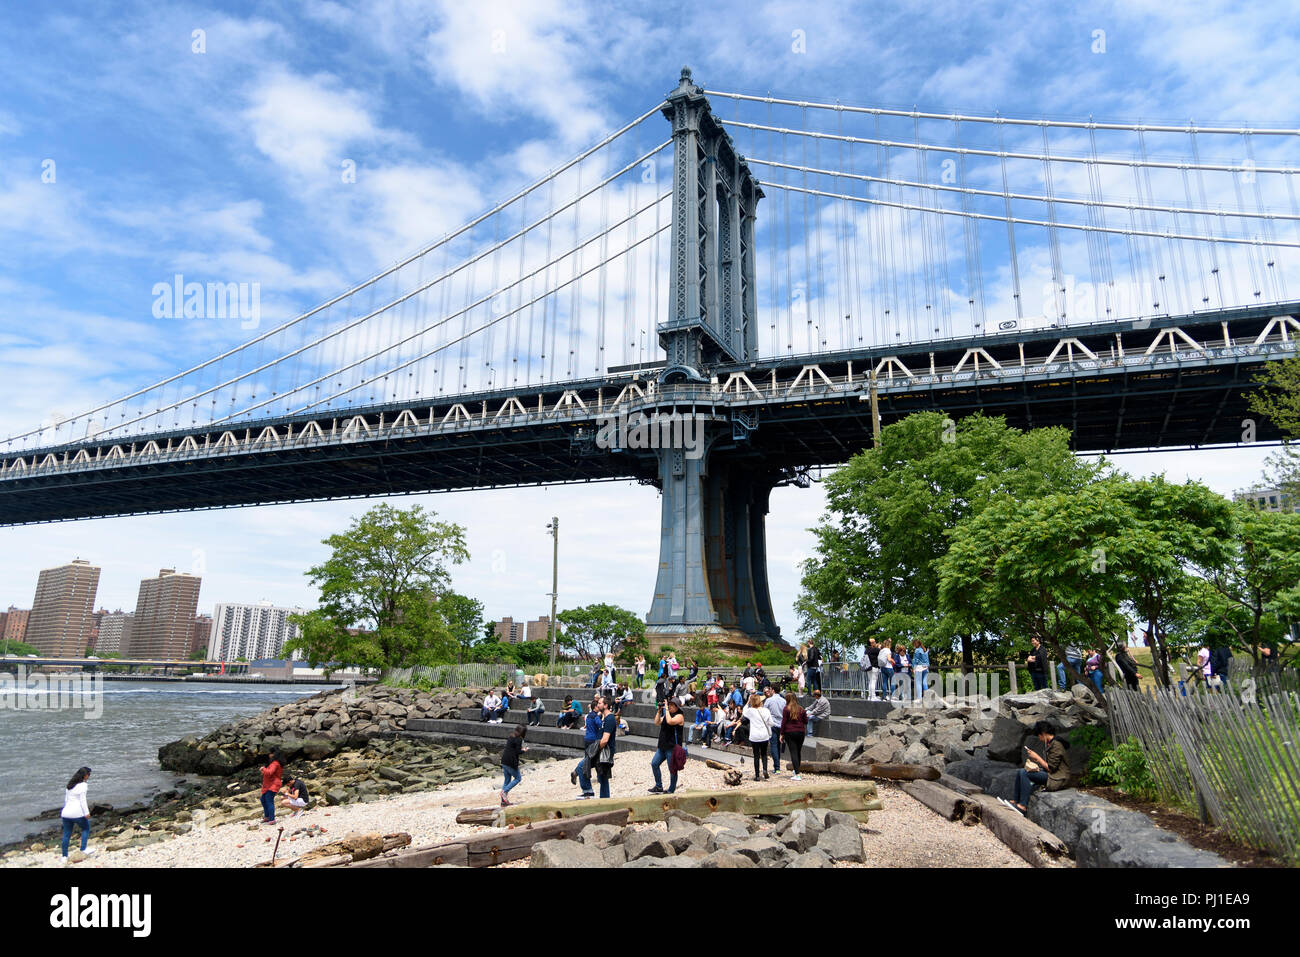 05-2017 New York, USA, DUMBO: Down Under the Manhattan Bridge Overpass.  Photo: © Simon Grosset Stock Photo